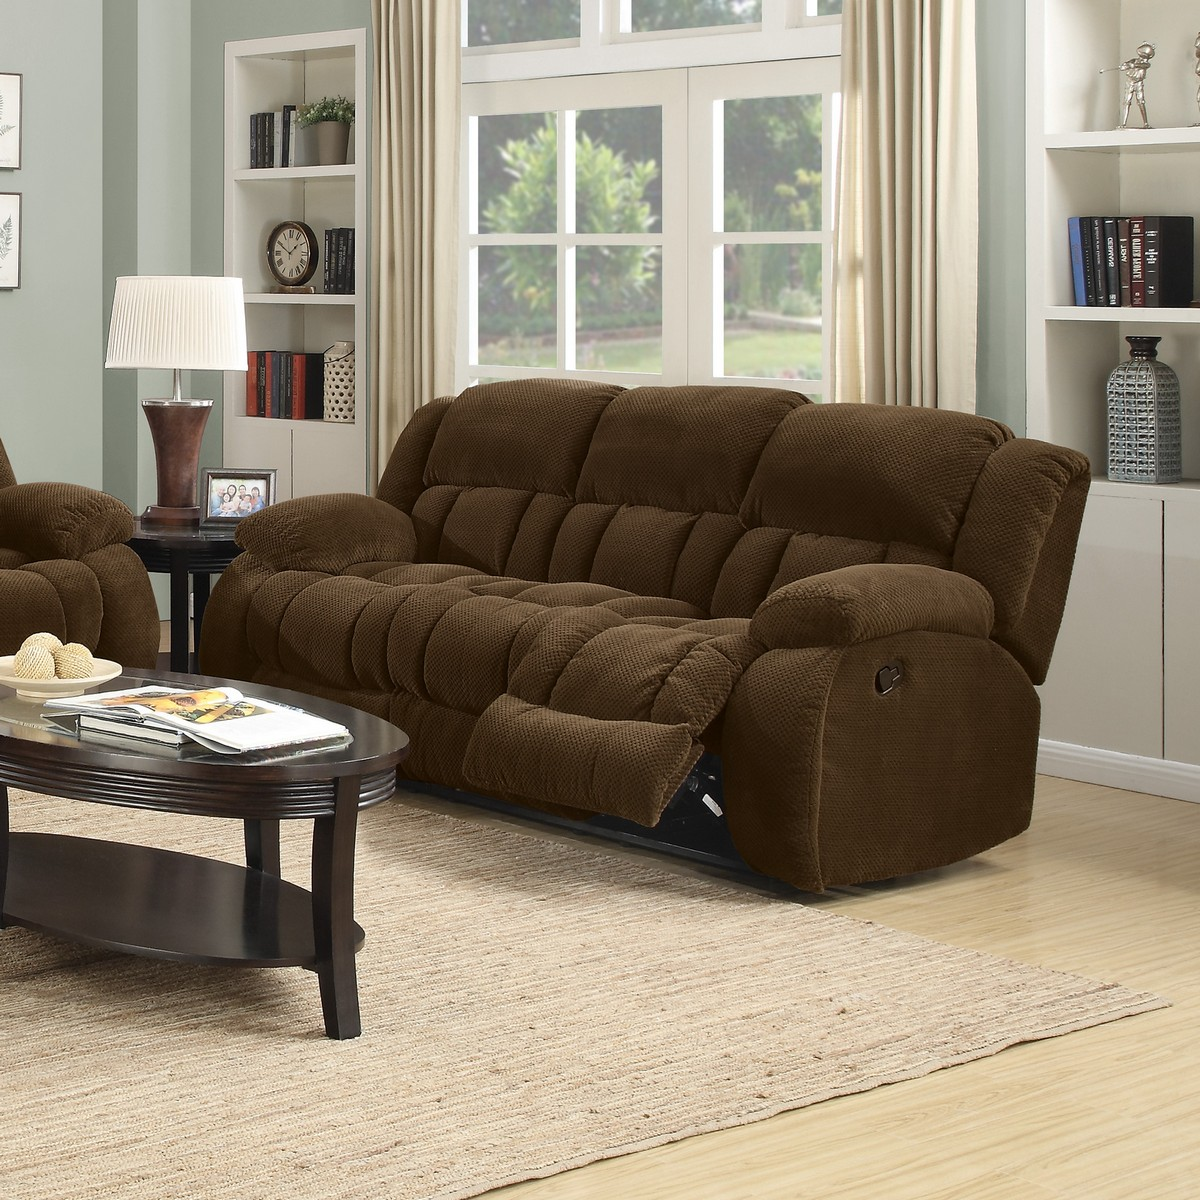 Coaster Weissman Reclining Sofa - Brown